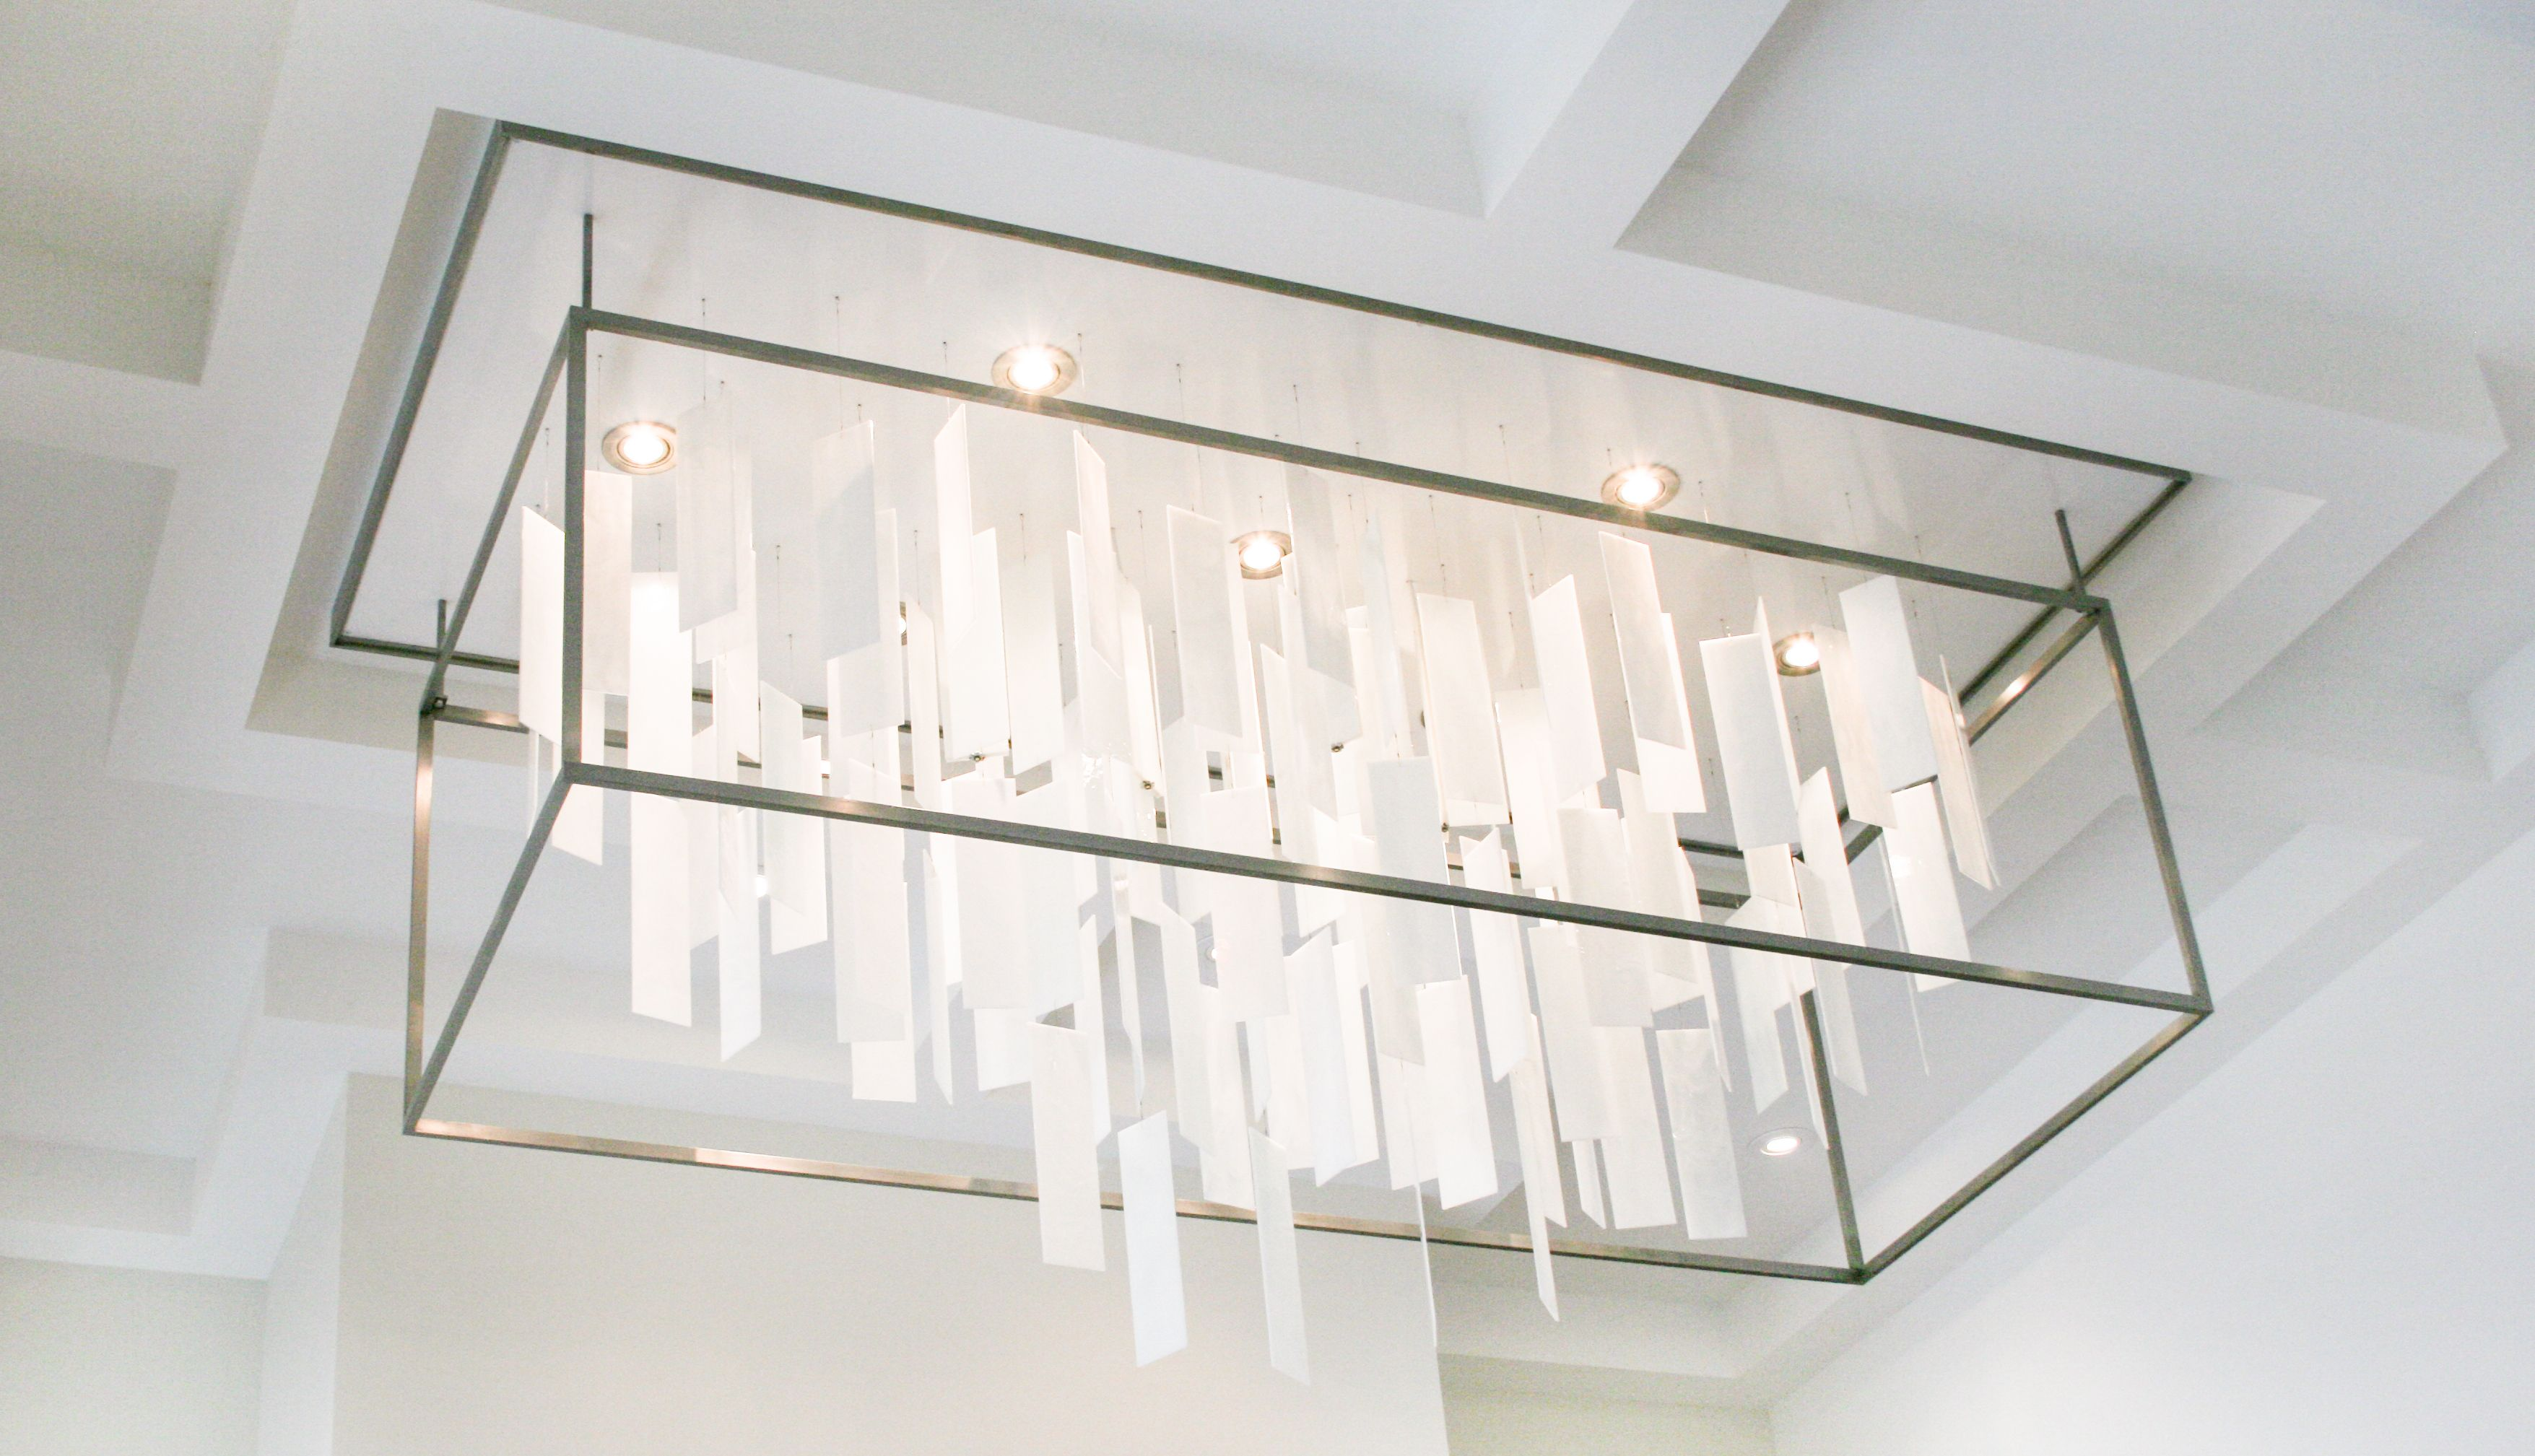 by sn pureedge universo rectangle index univ suspension light fixture lighting